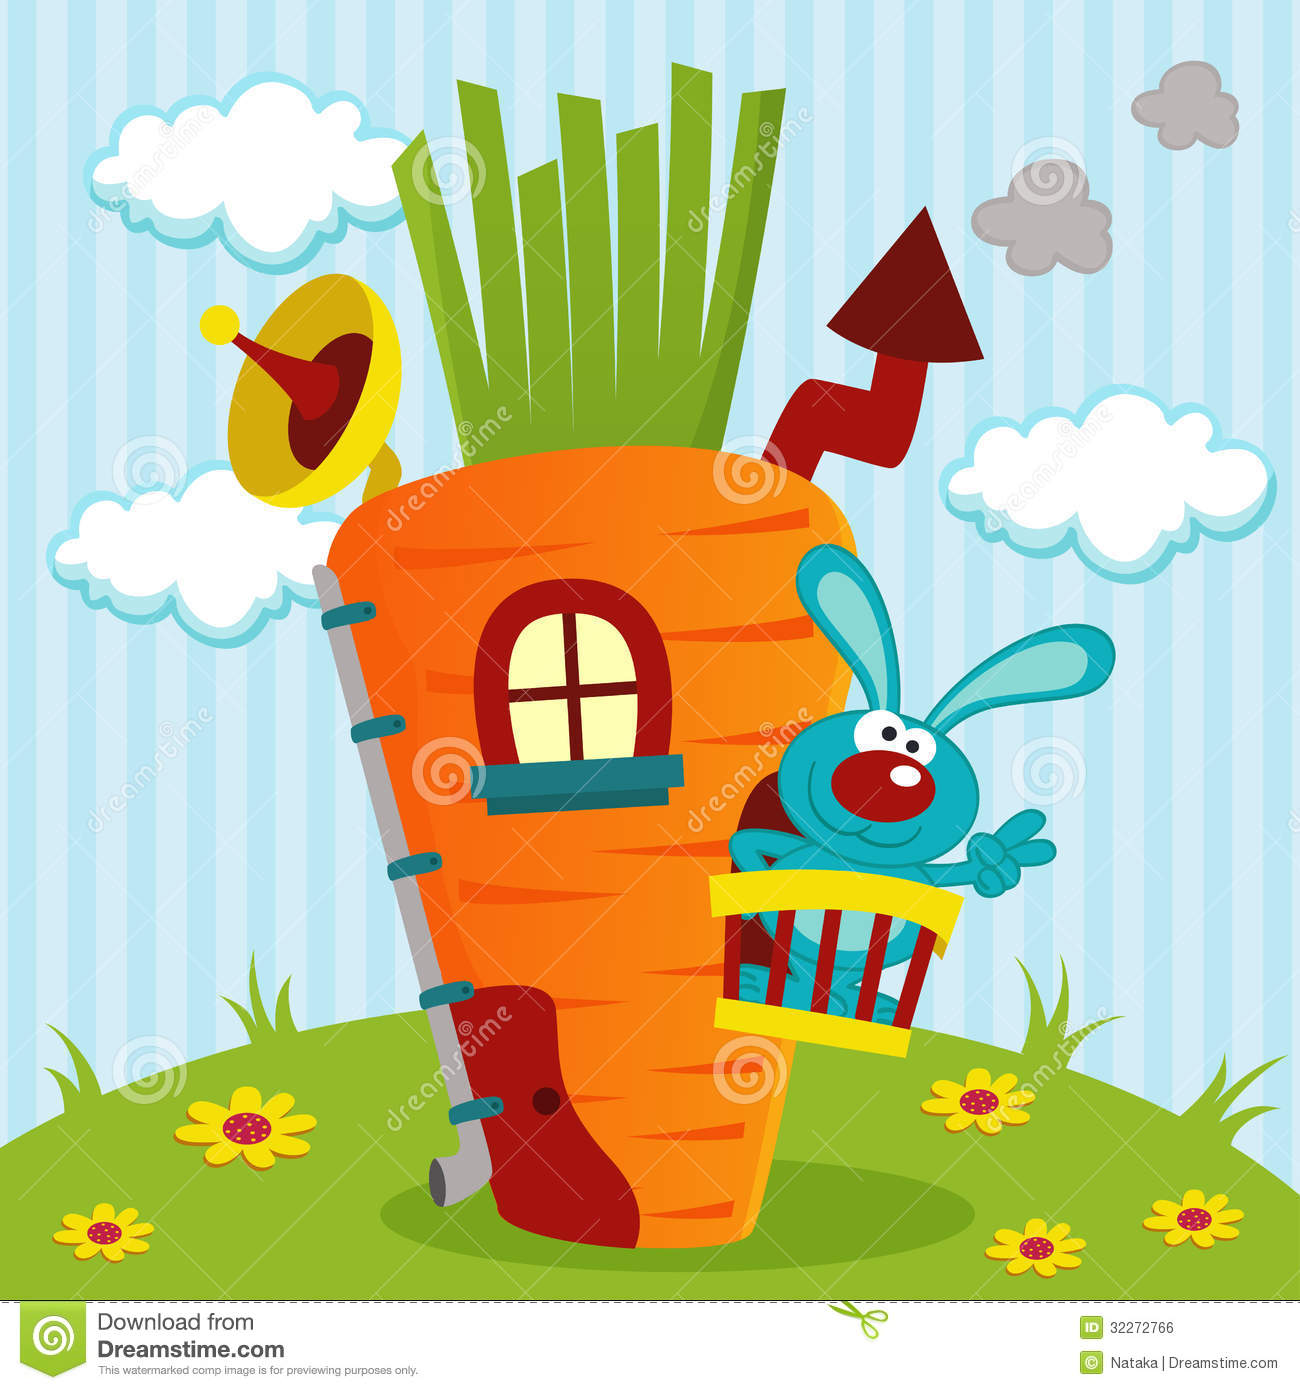 Rabbit In House Of Carrots Royalty Free Stock Image - Image: 32272766